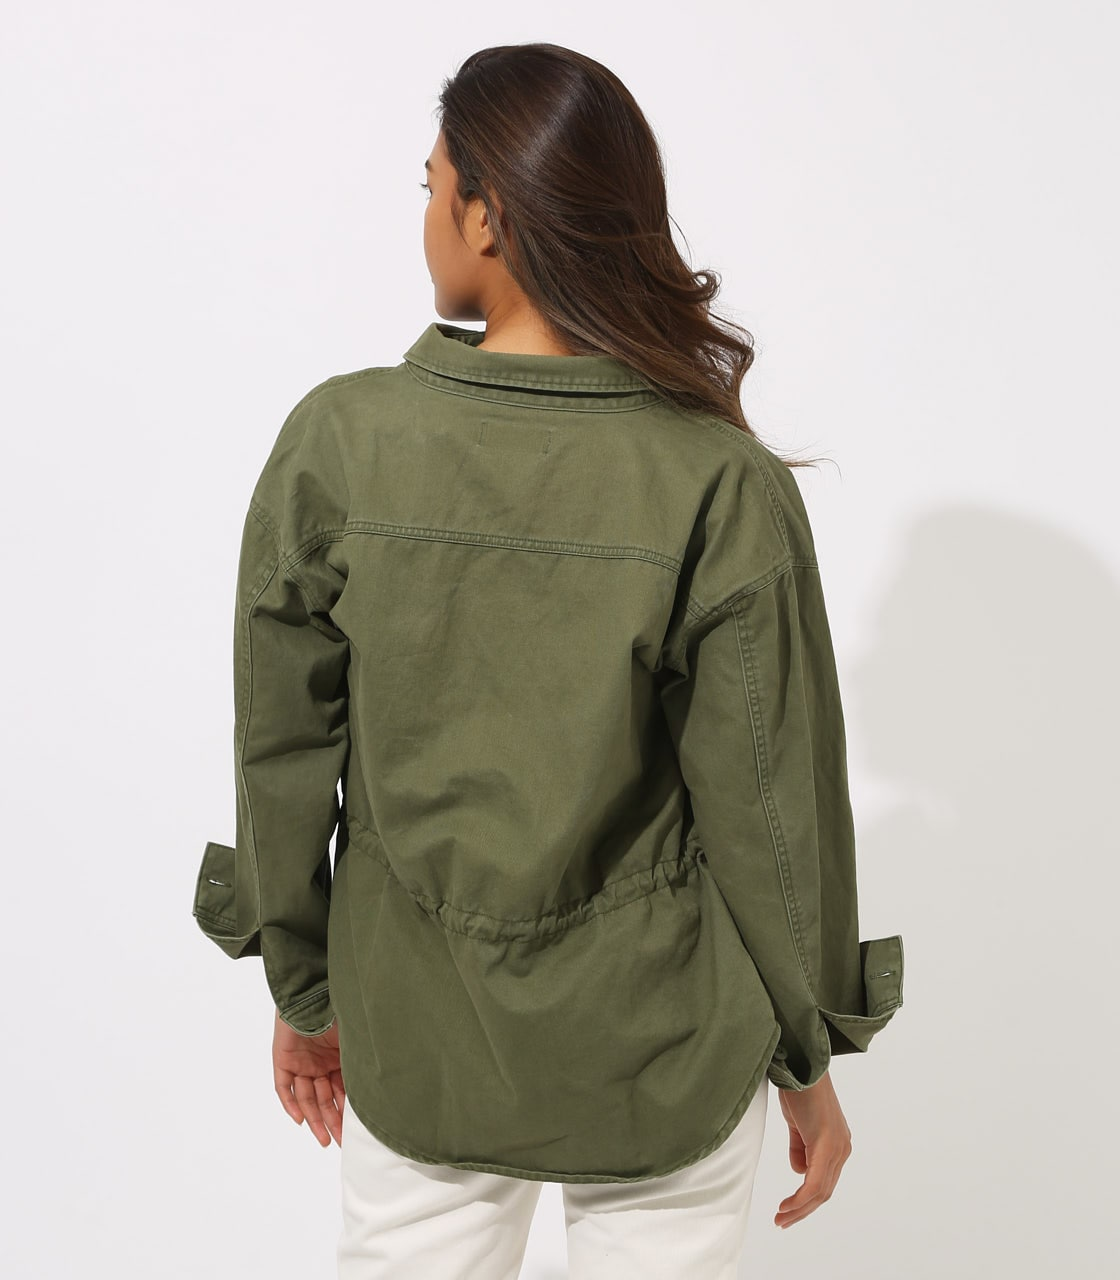 【AZUL BY MOUSSY】Military Blouson 詳細画像 L/KHA 7